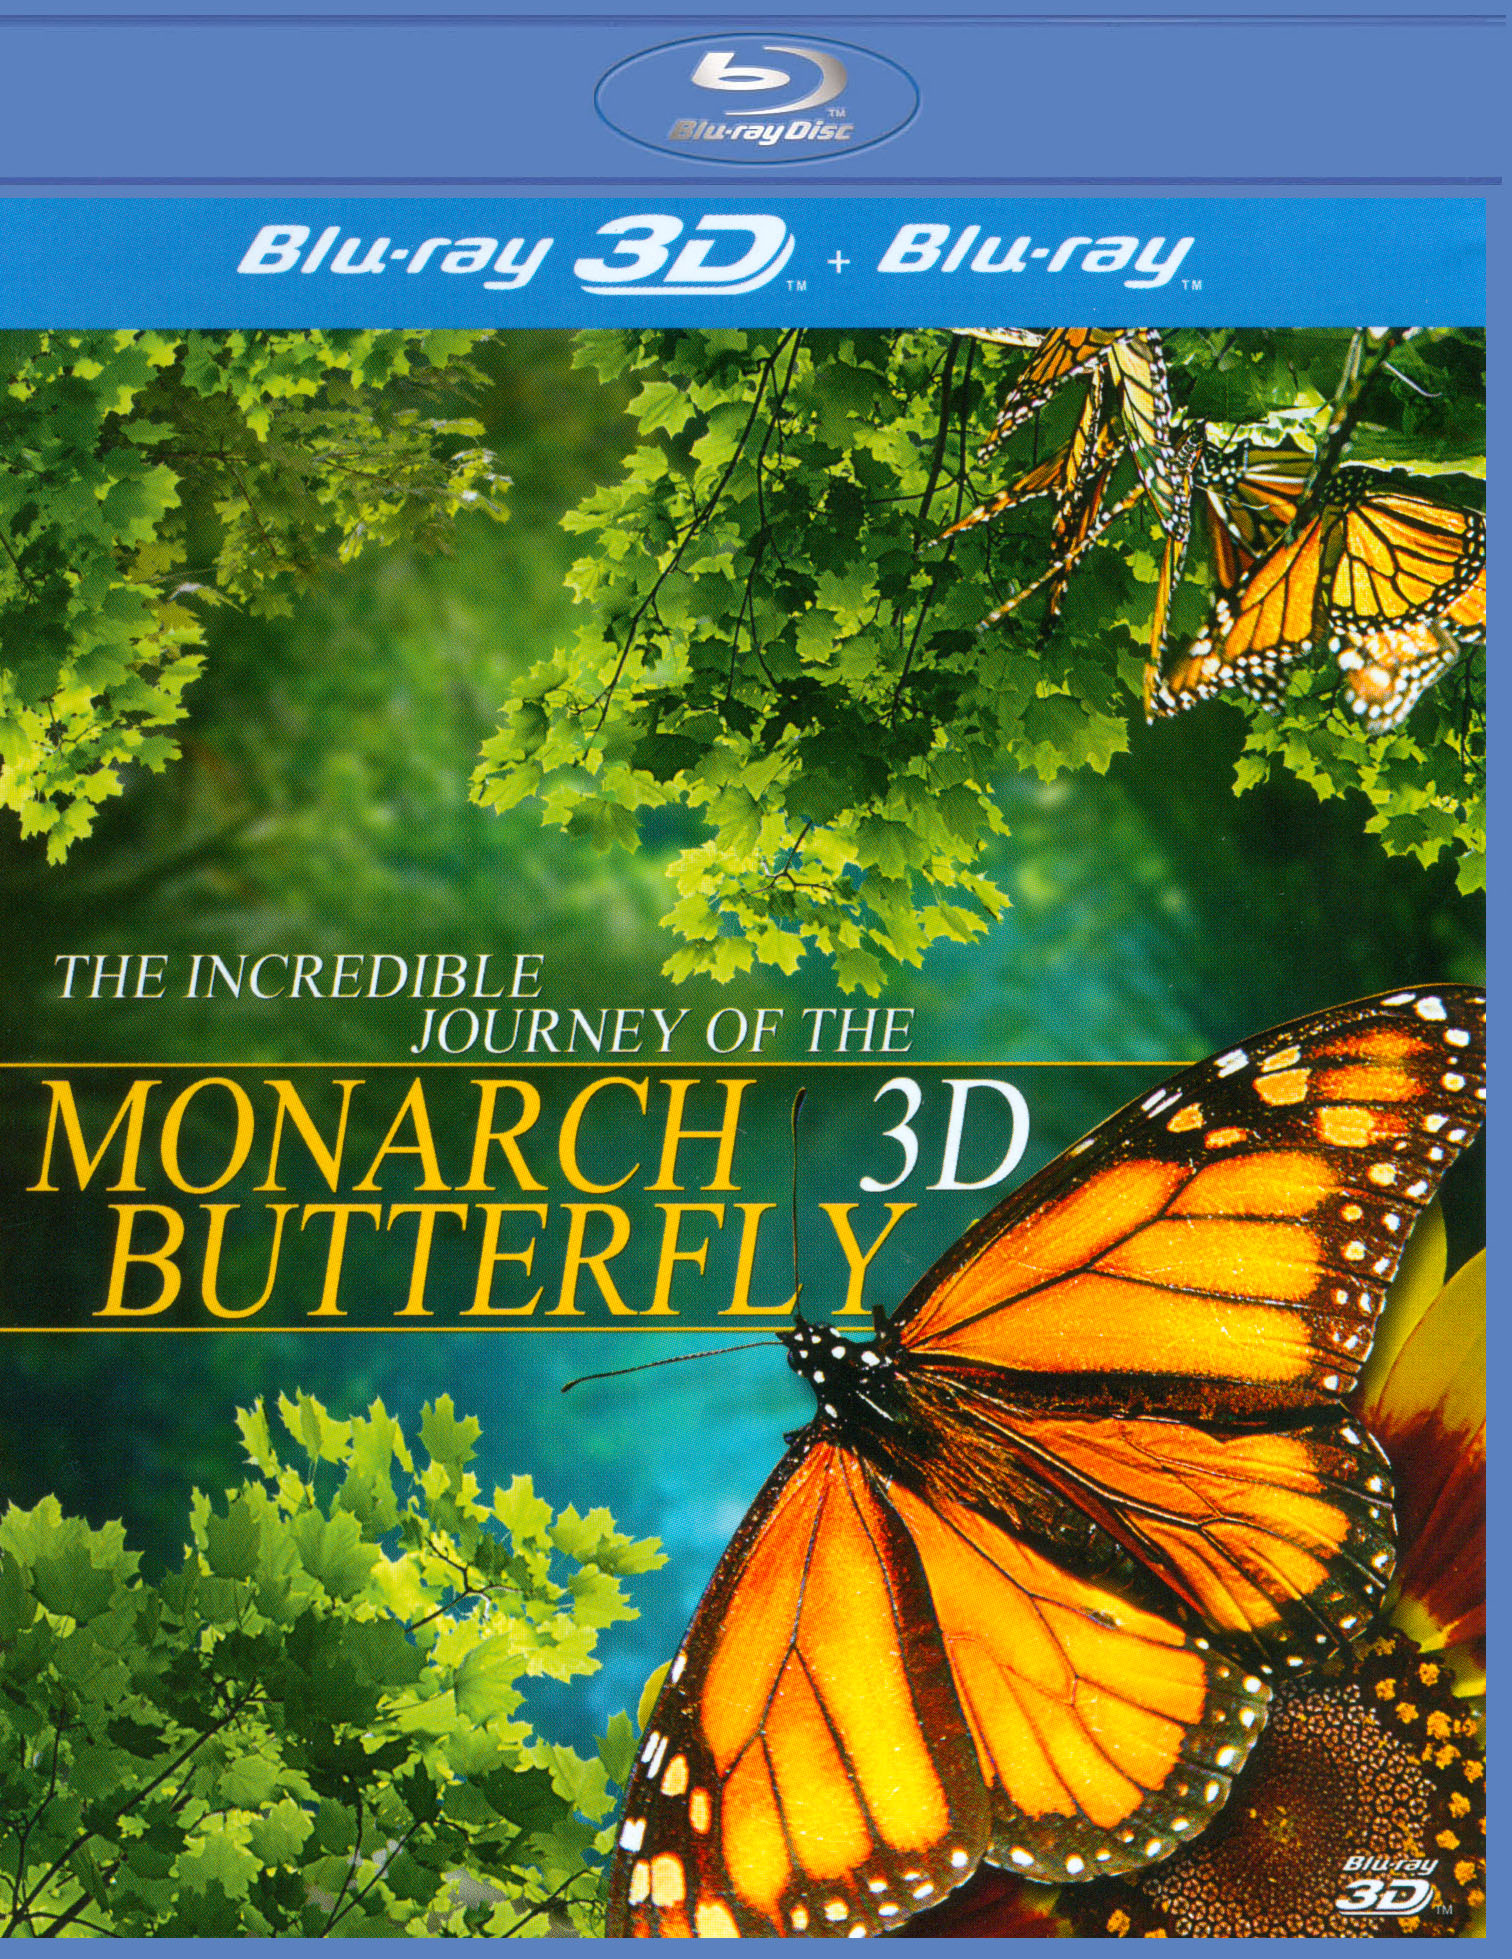 The Incredible Journey of the Monarch Butterfly 3D